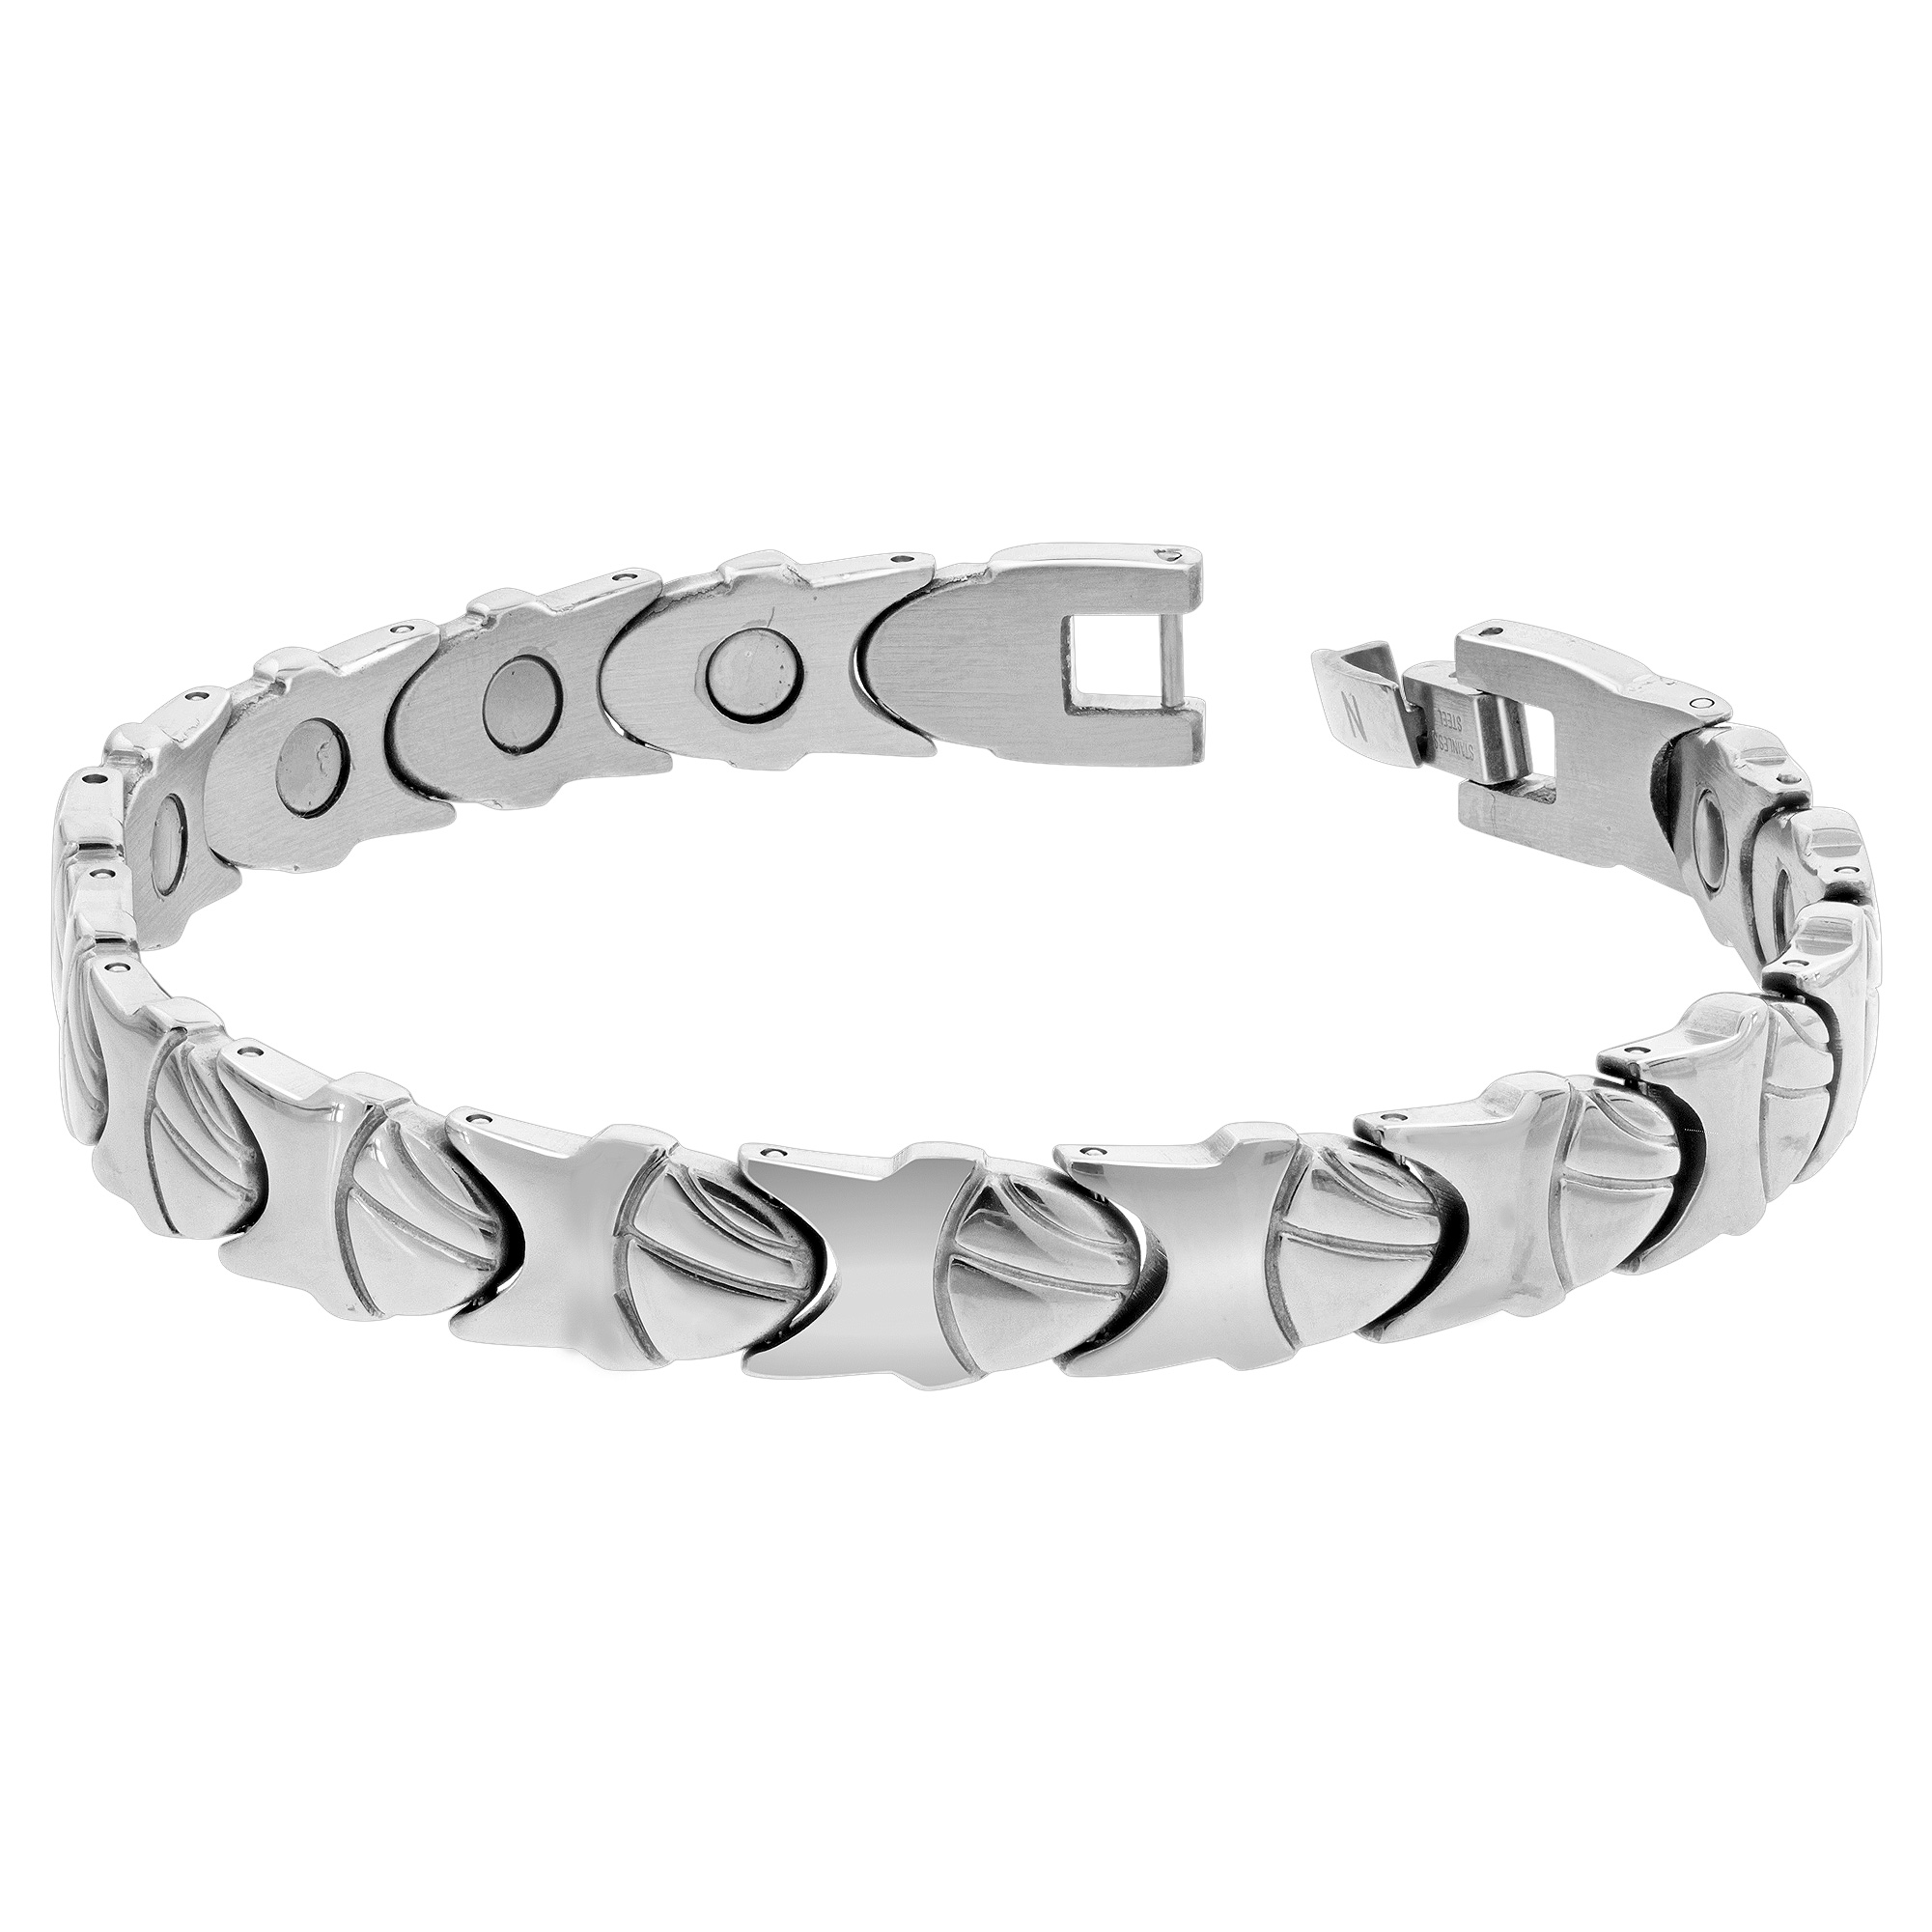 Gem Avenue Stainless Steel Womens Magnetic Bracelet 7.75 inch Long with Fold over Clasps at Sears.com